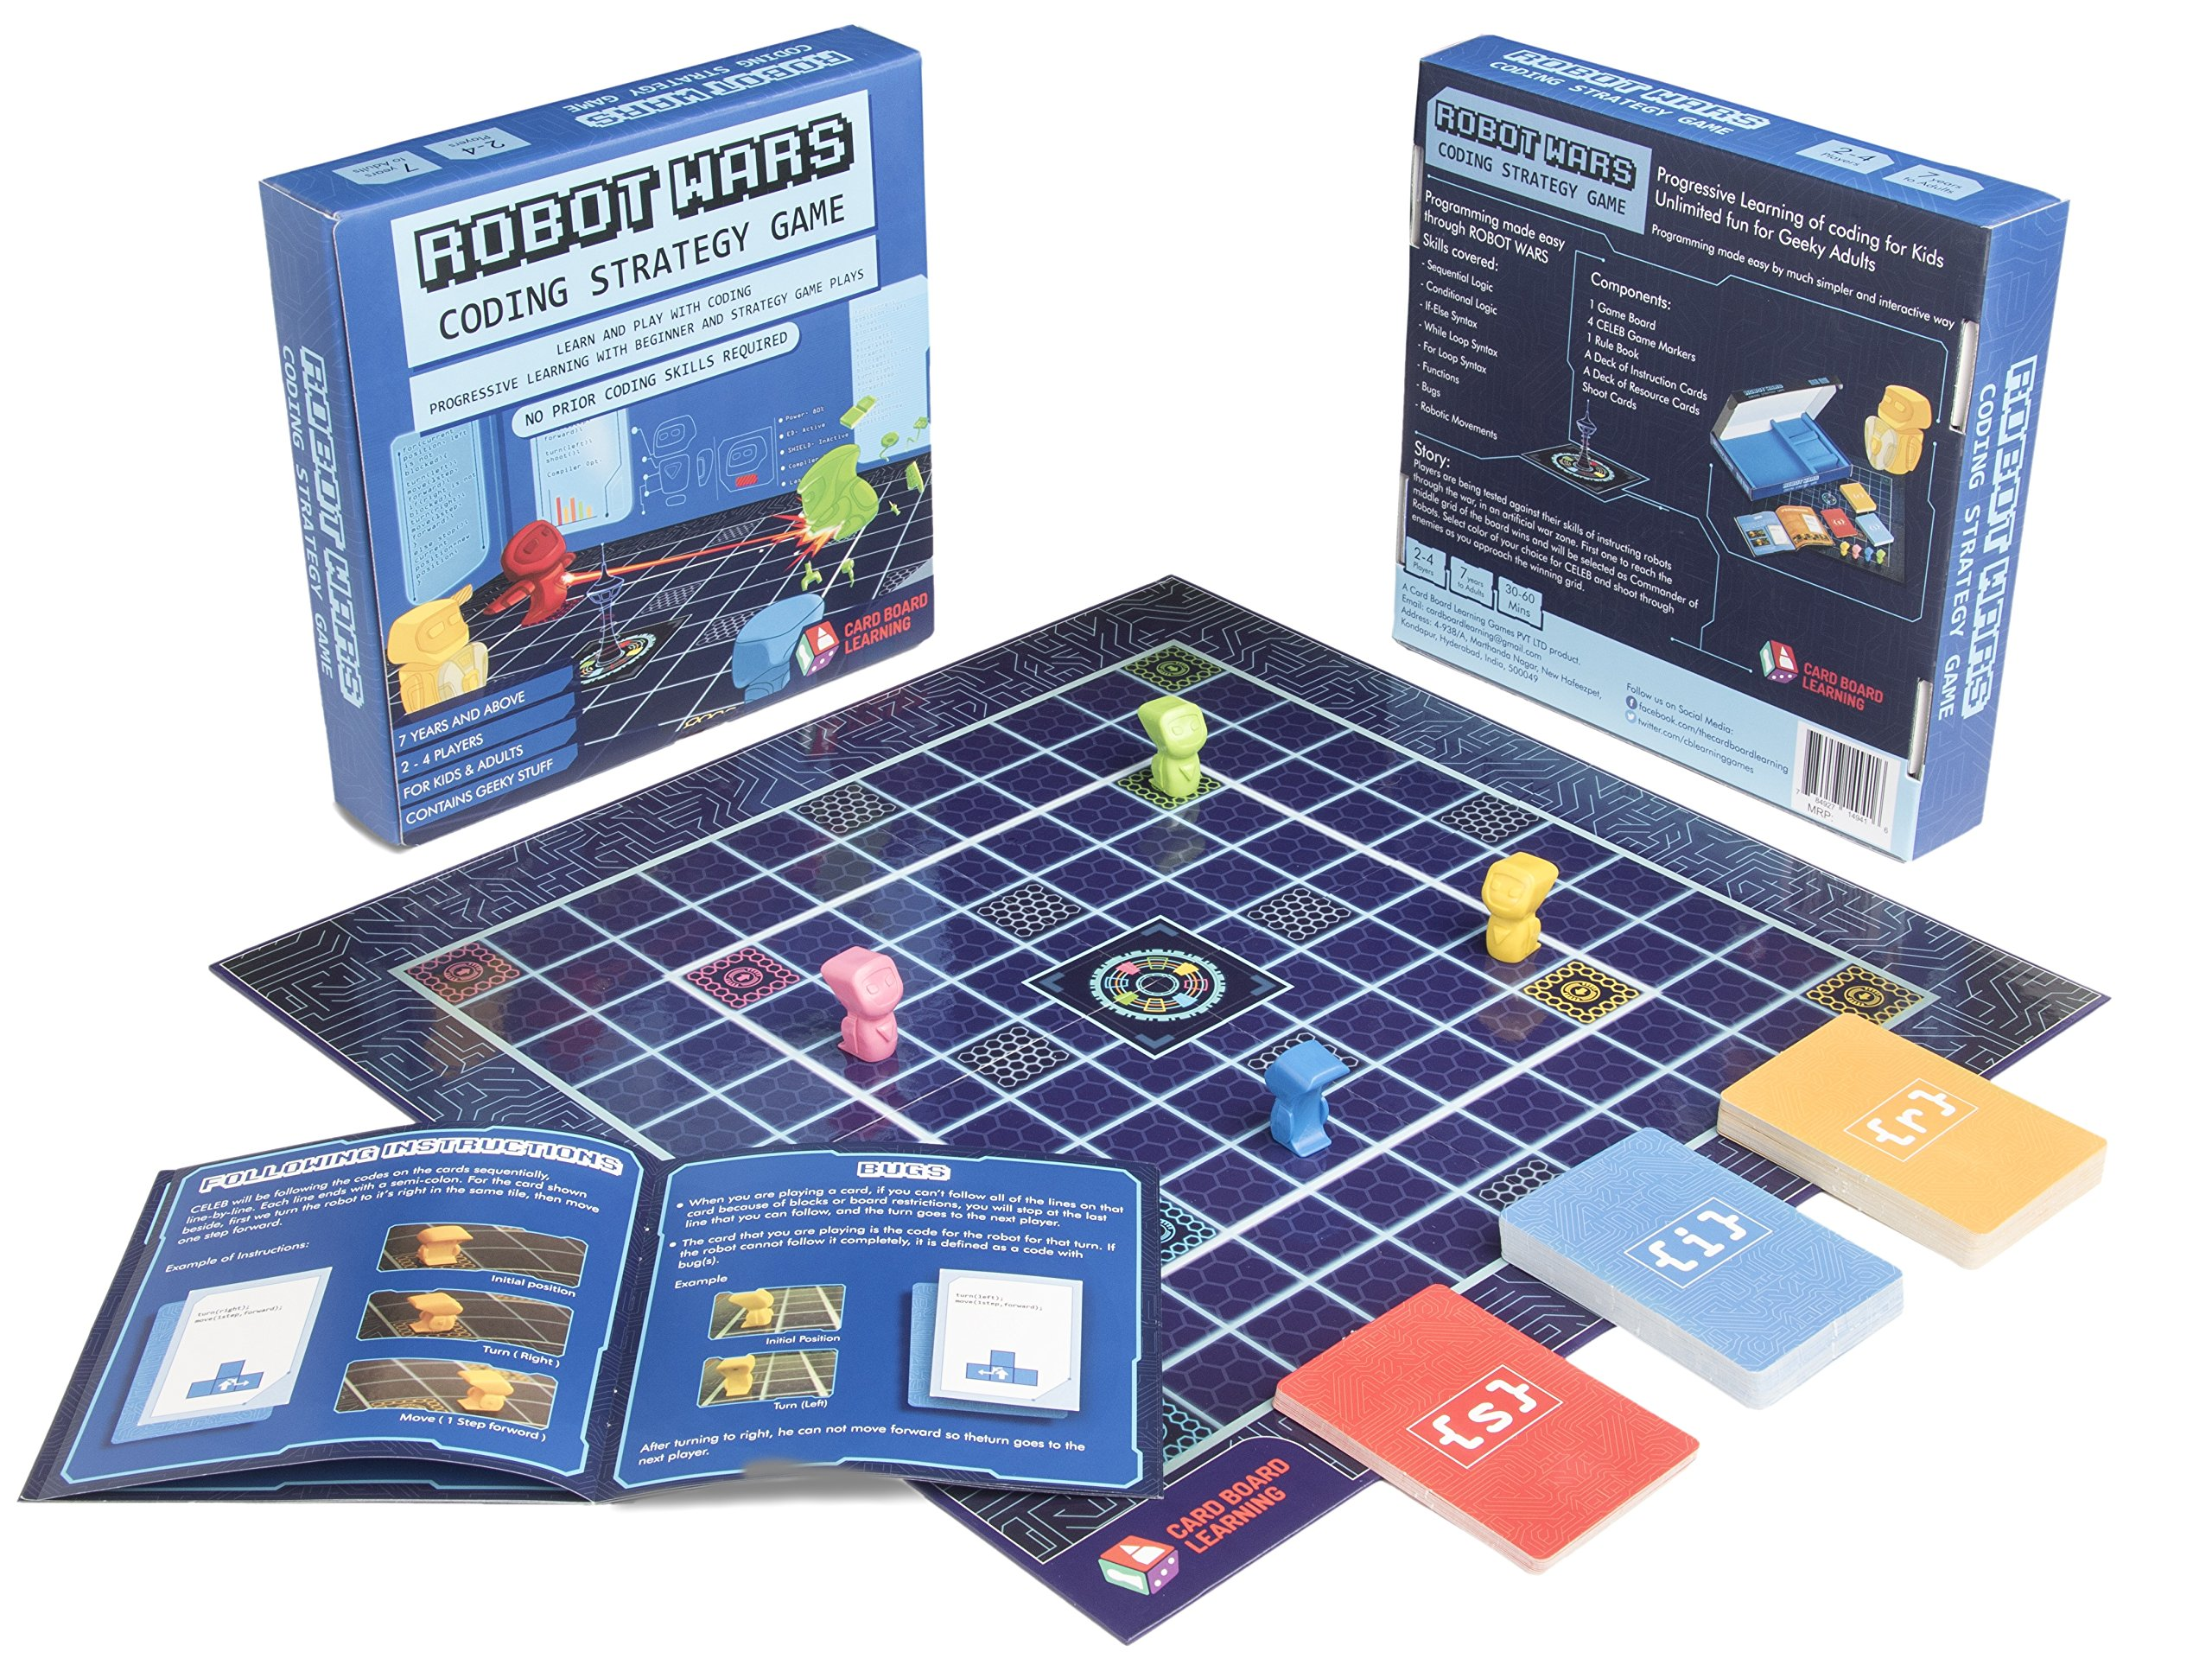 ROBOT WARS Coding Board Game - Learn and Play with Computer Programming. Geeky STEM Toy and Gift for Boys and Girls ages 7 years and up. No Prior Coding Skills Required